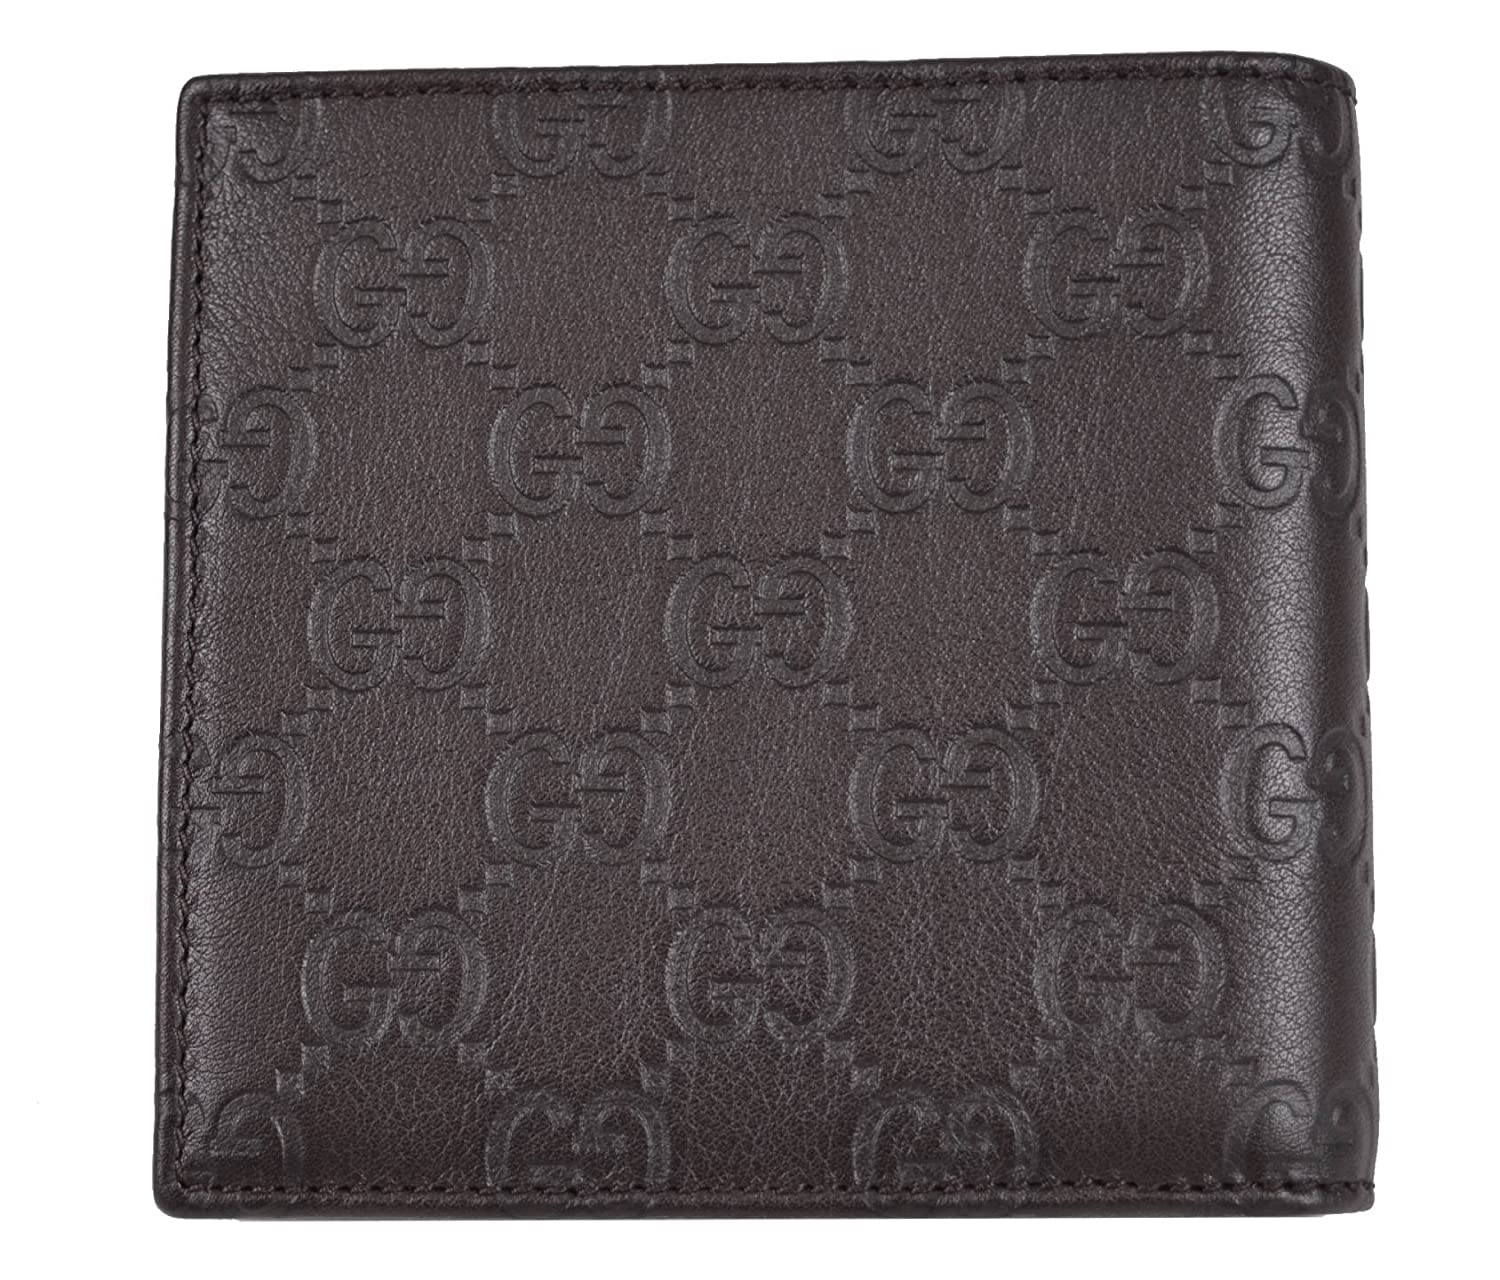 2cc683f78685 Gucci Men's 150413 Brown Leather GG Guccissima Coin Pocket Bifold Wallet  O/S at Amazon Men's Clothing store: